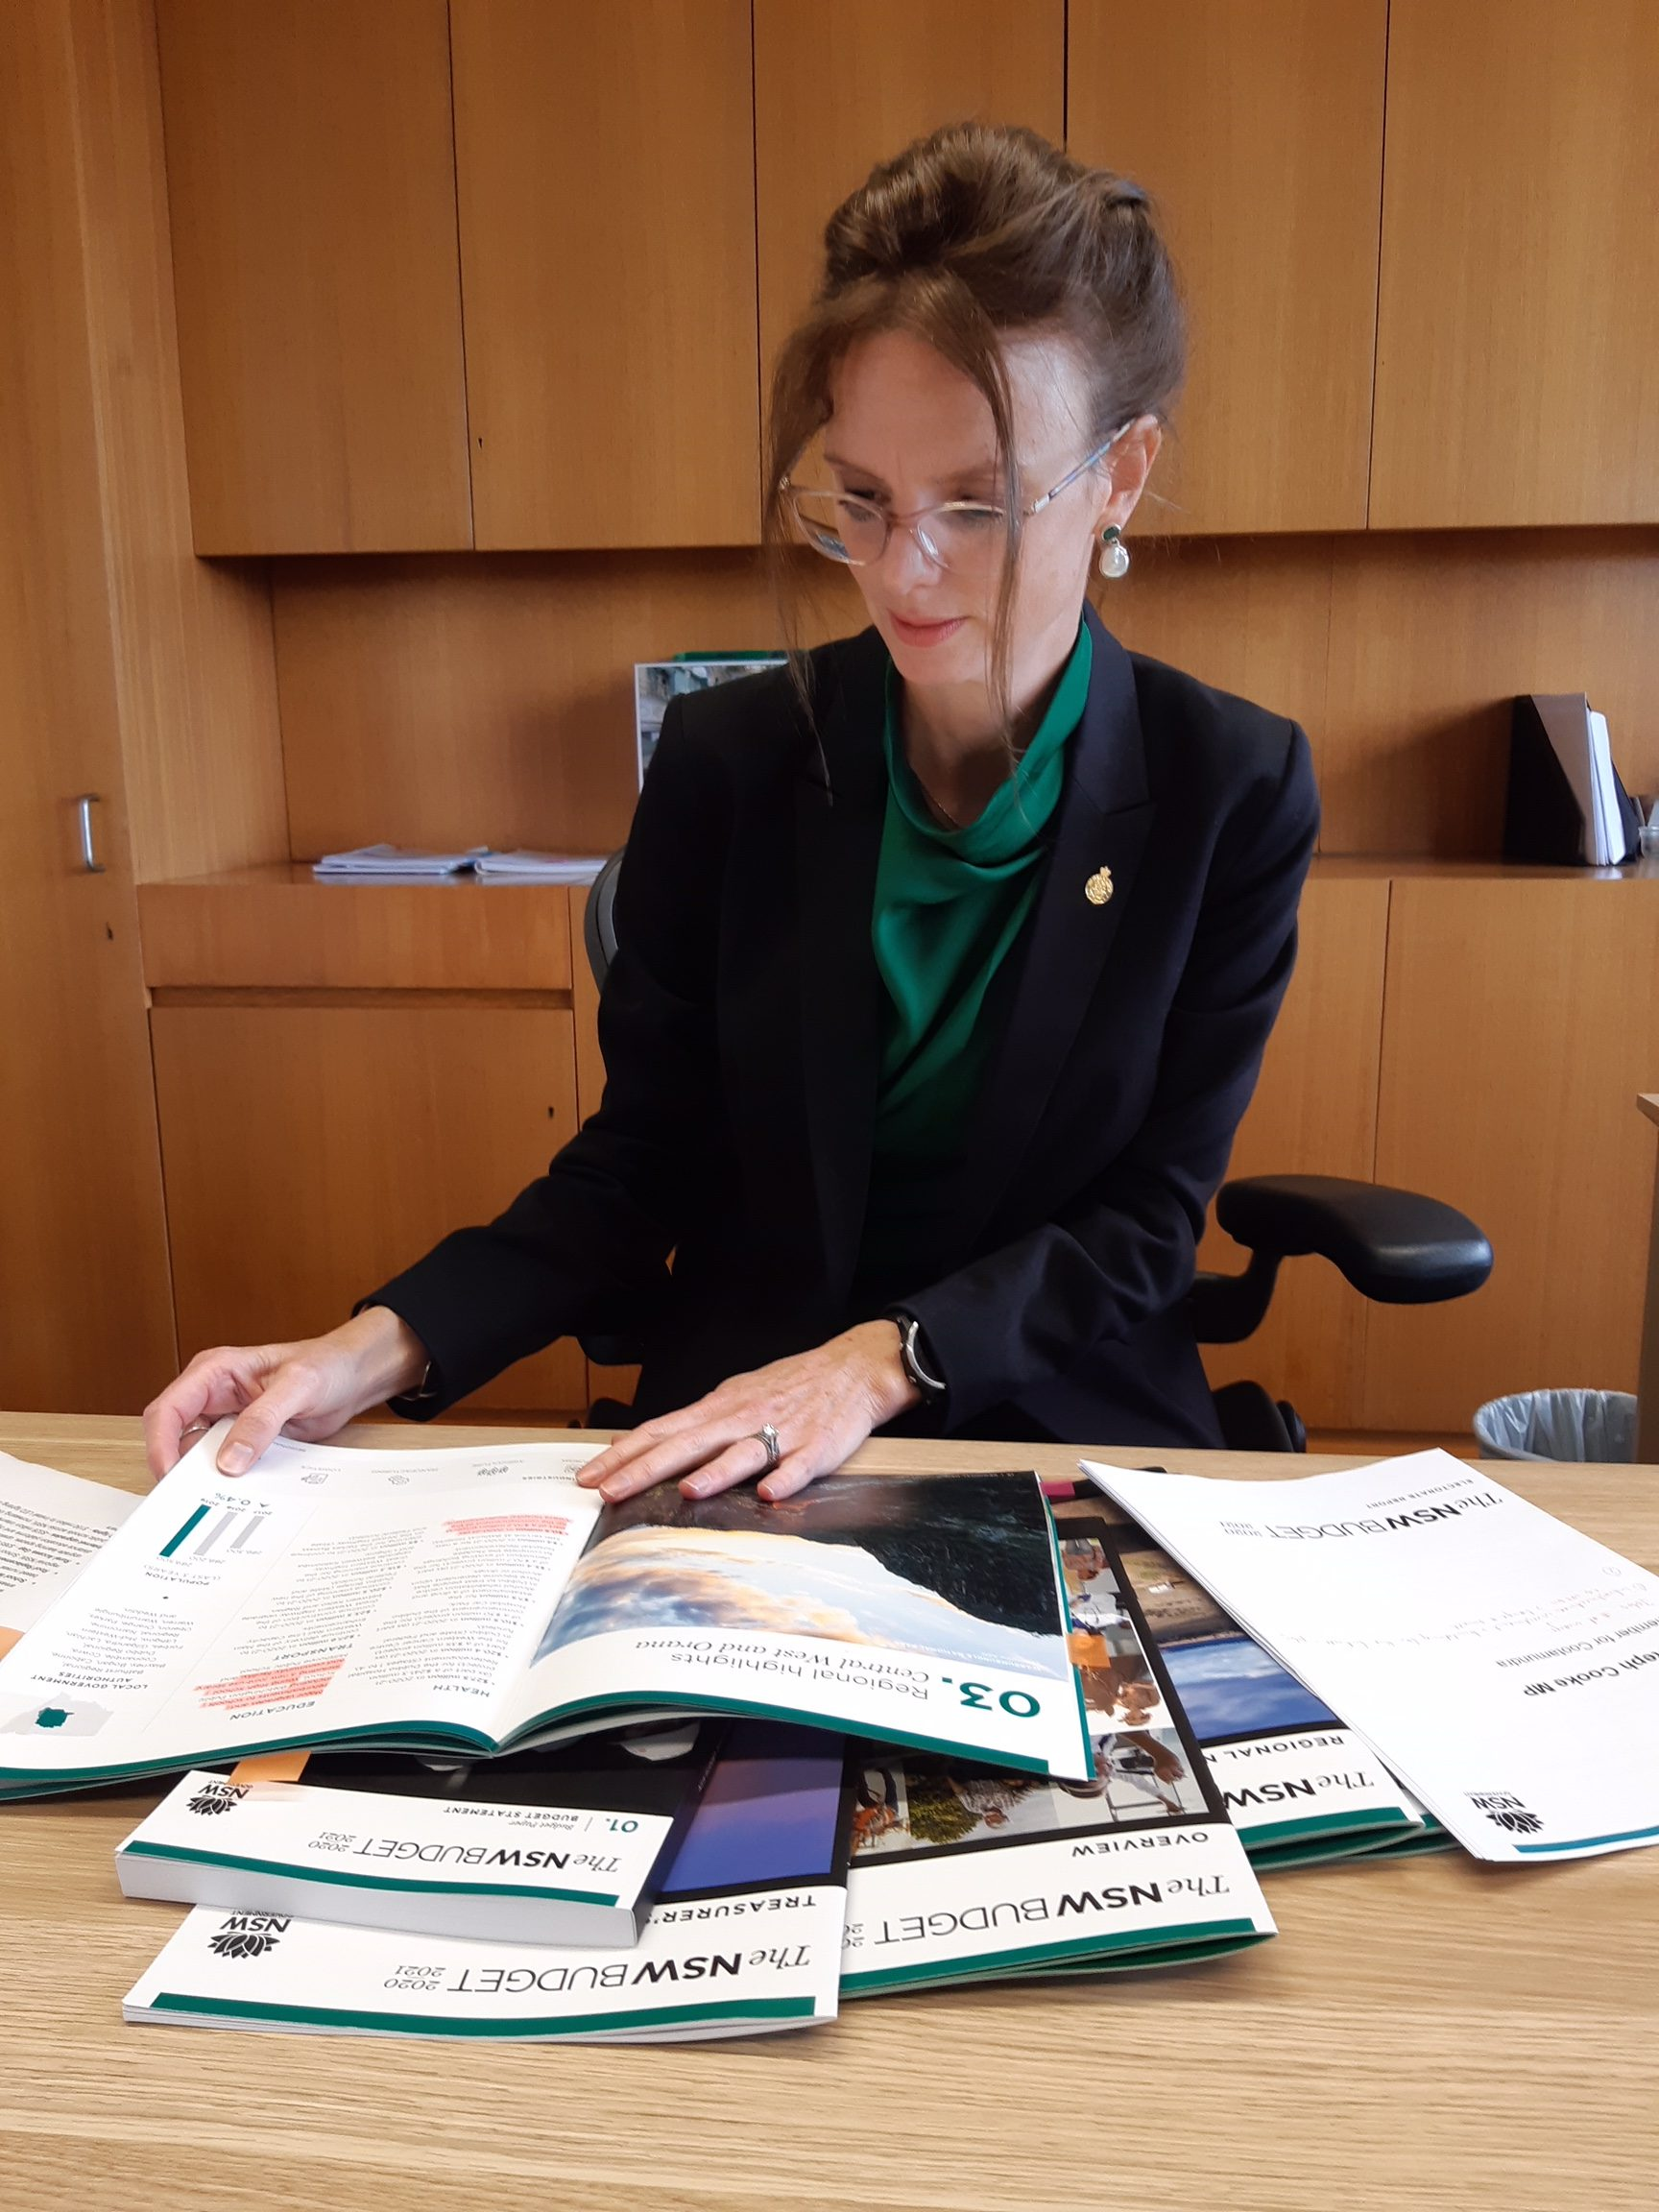 Steph Cooke looks down at Budget Papers spread across a timber desk.